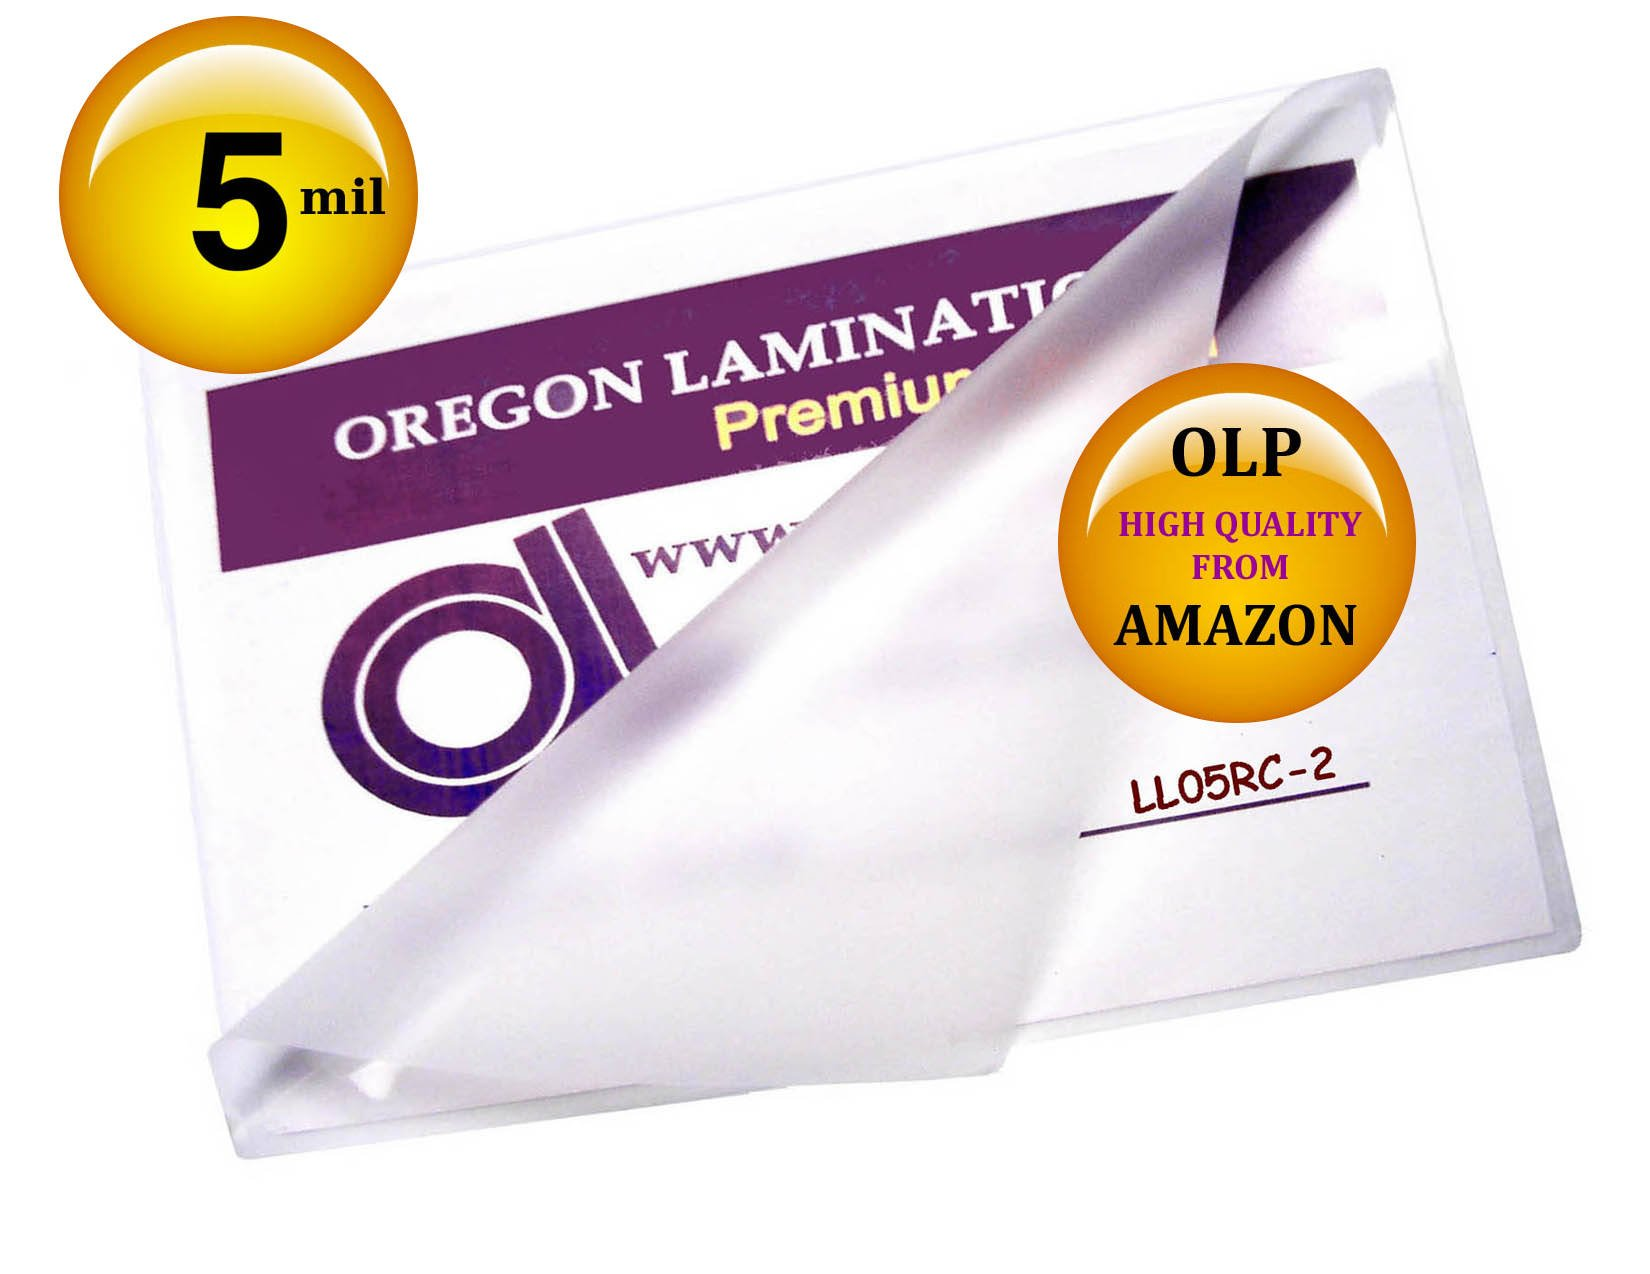 Qty 200 Legal Laminating Pouches 5 Mil 9 x 14-1/2 by Oregon Lamination Premium